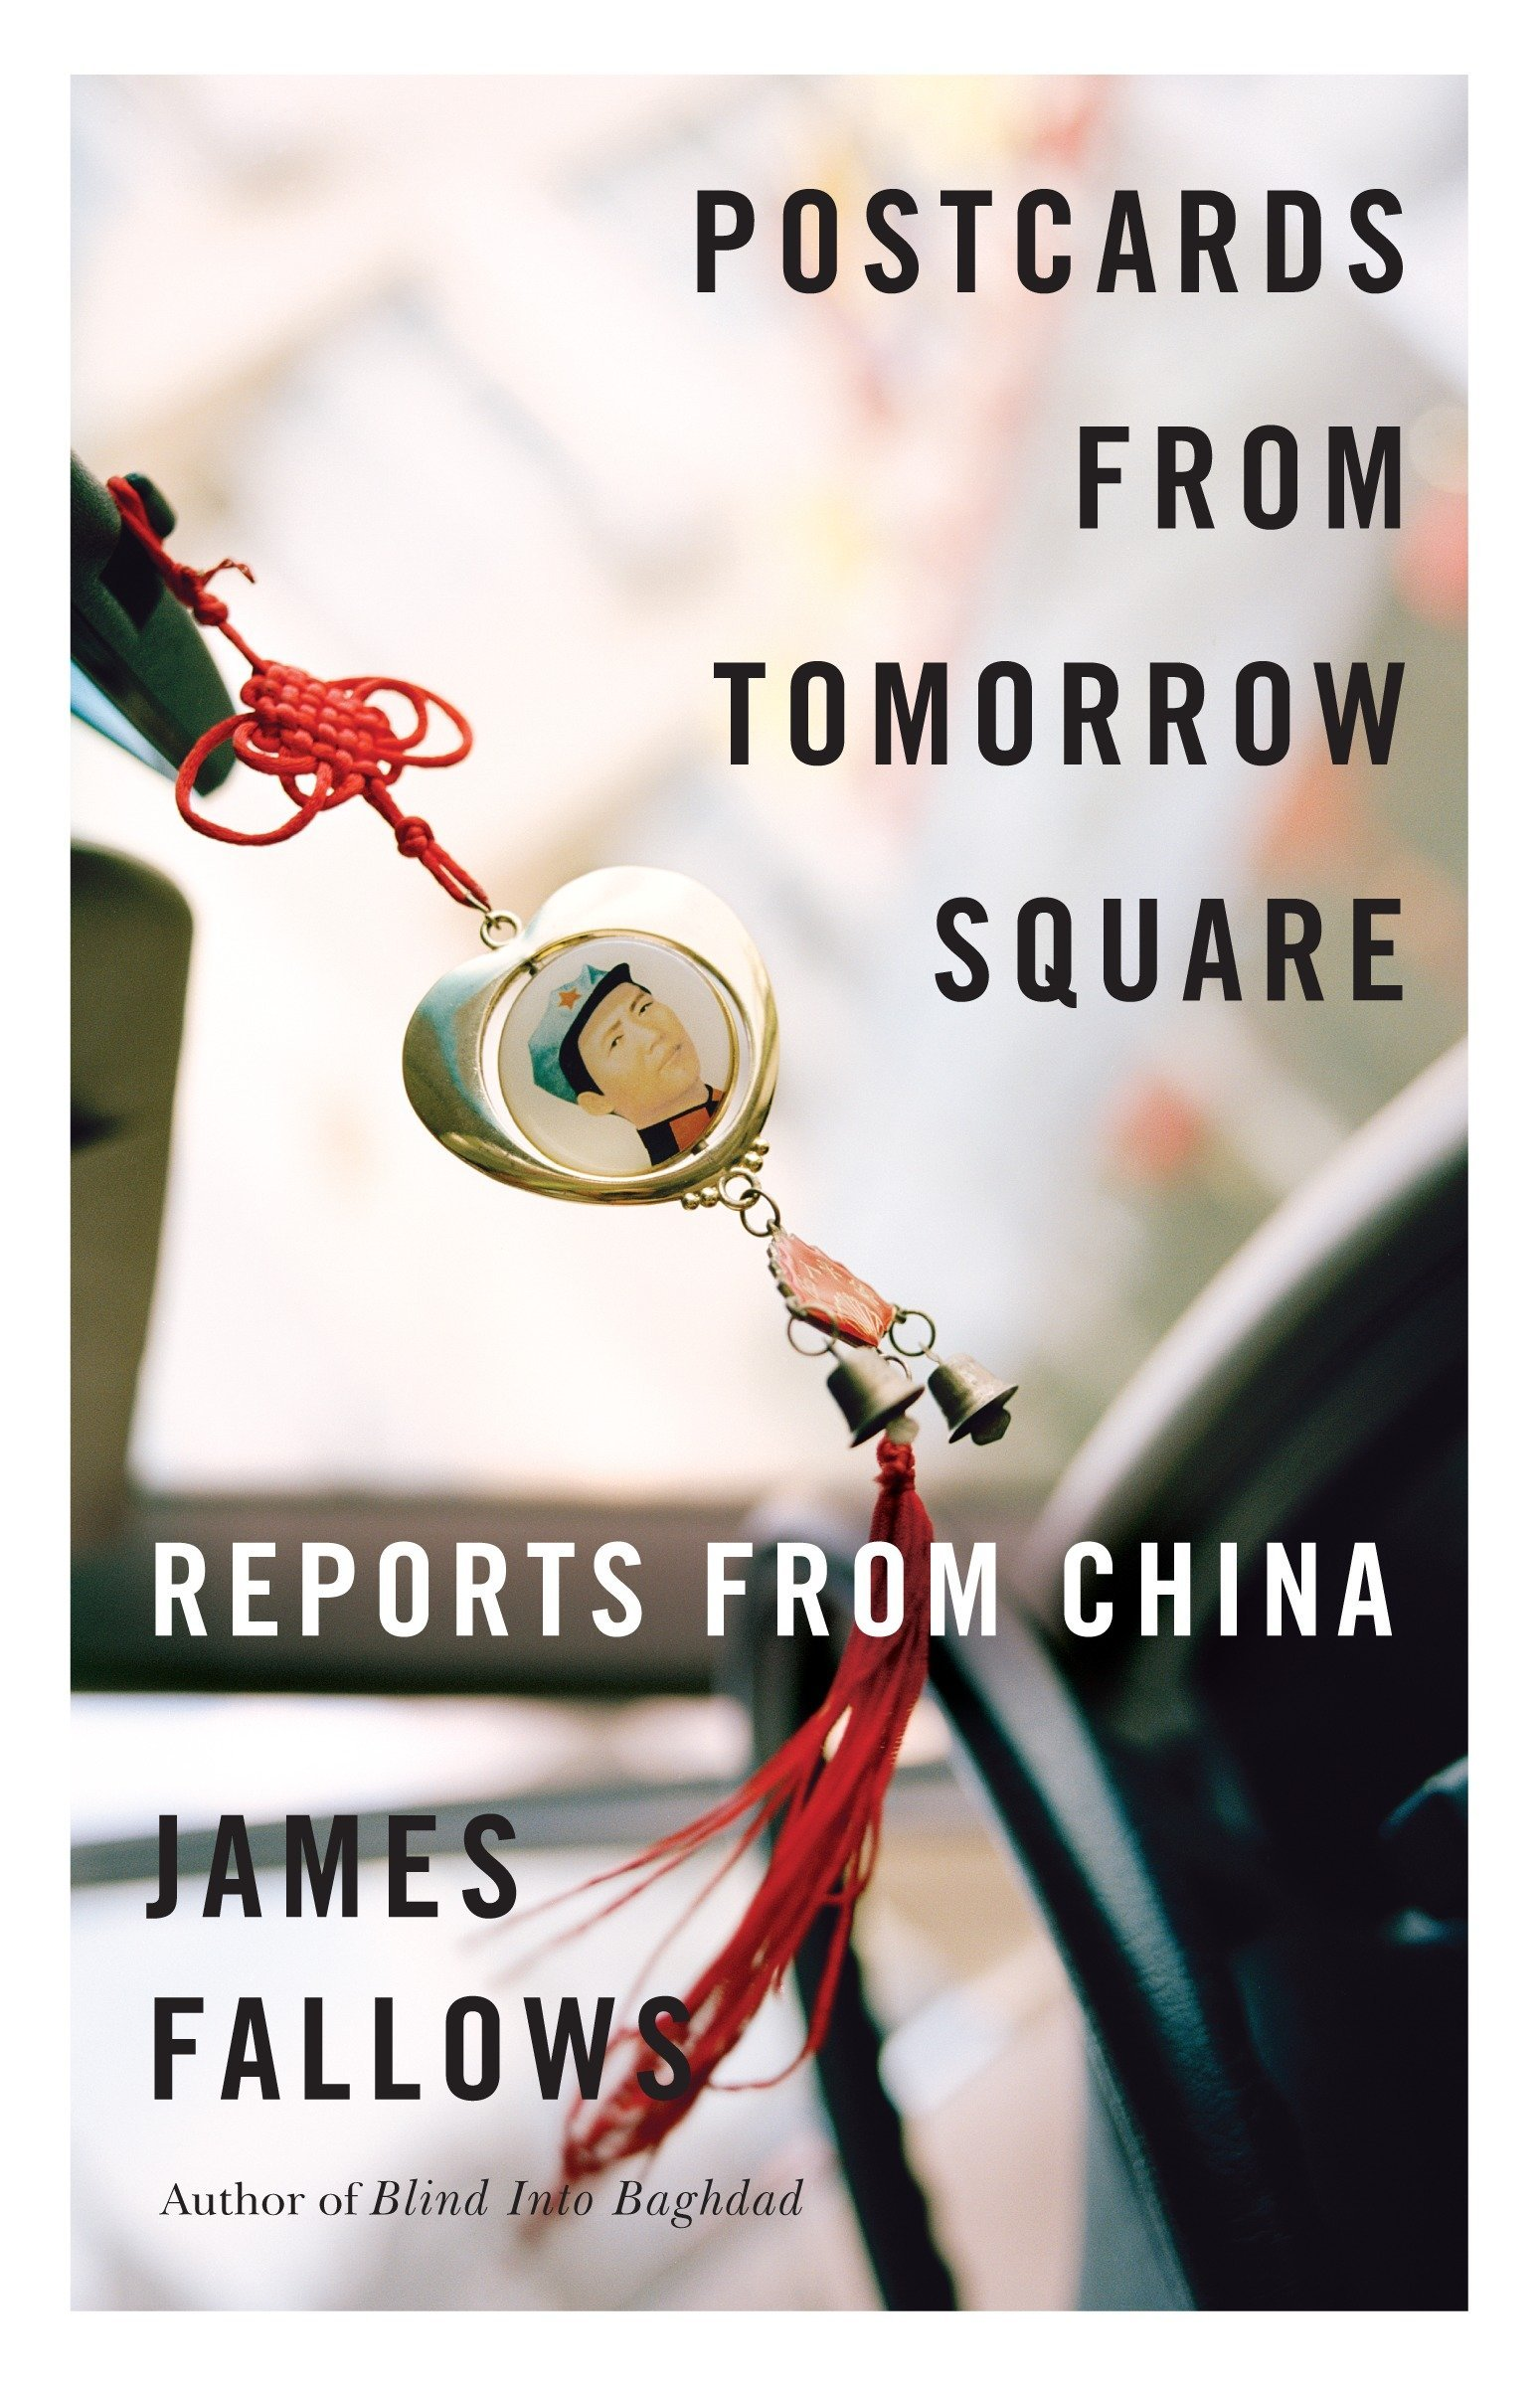 postcards from tomorrow square reports from china james fallows